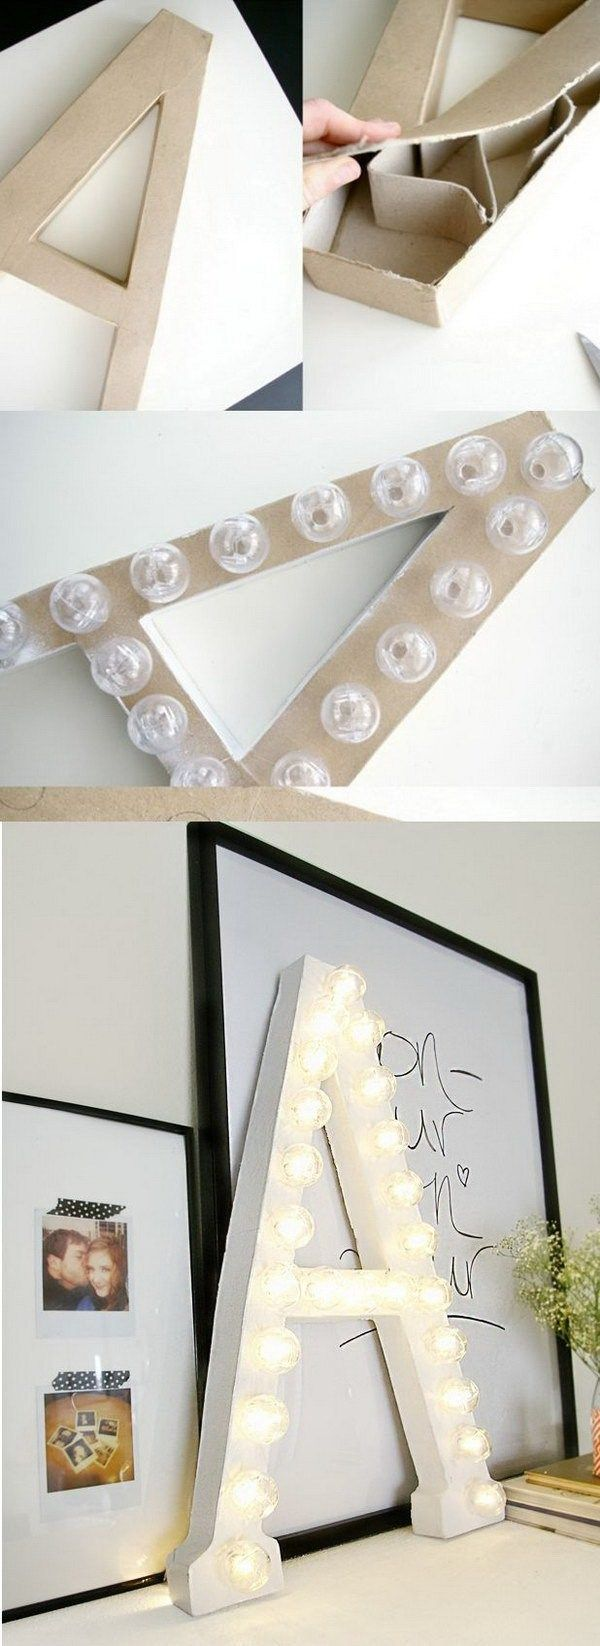 cool diy ideas tutorials for teenage girls bedroom decoration - Pictures Of Bedroom Decorations